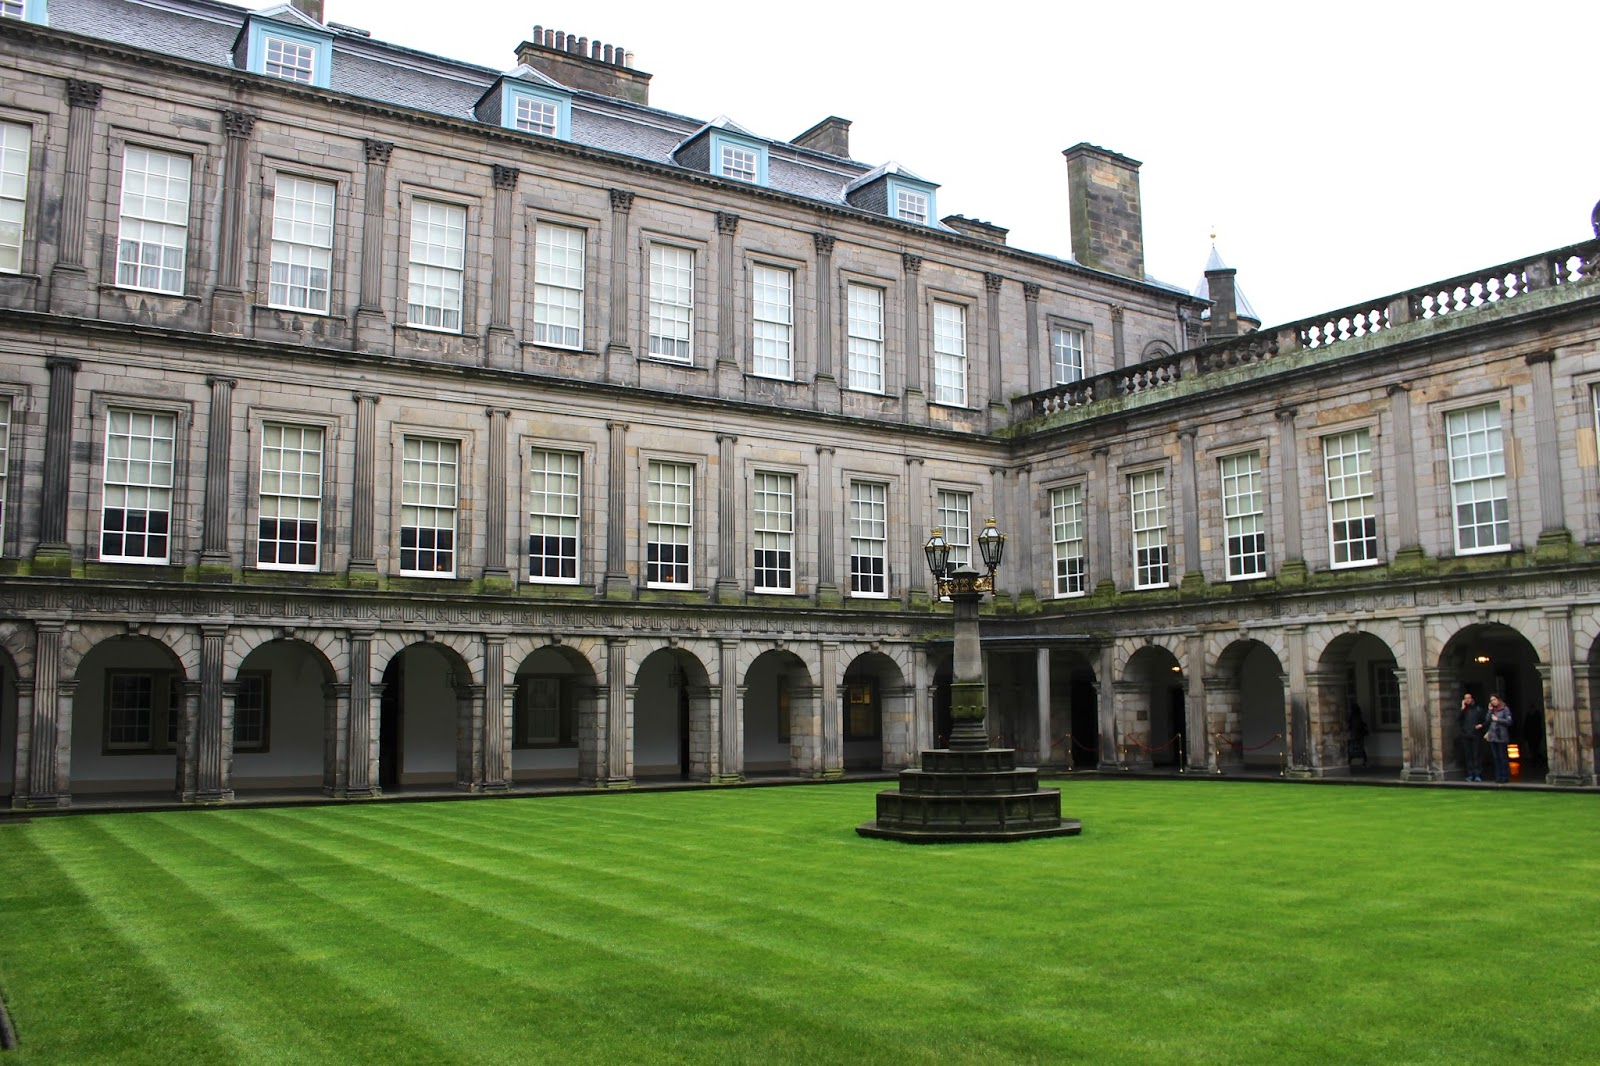 Holyrood Palace courtyard grass photography